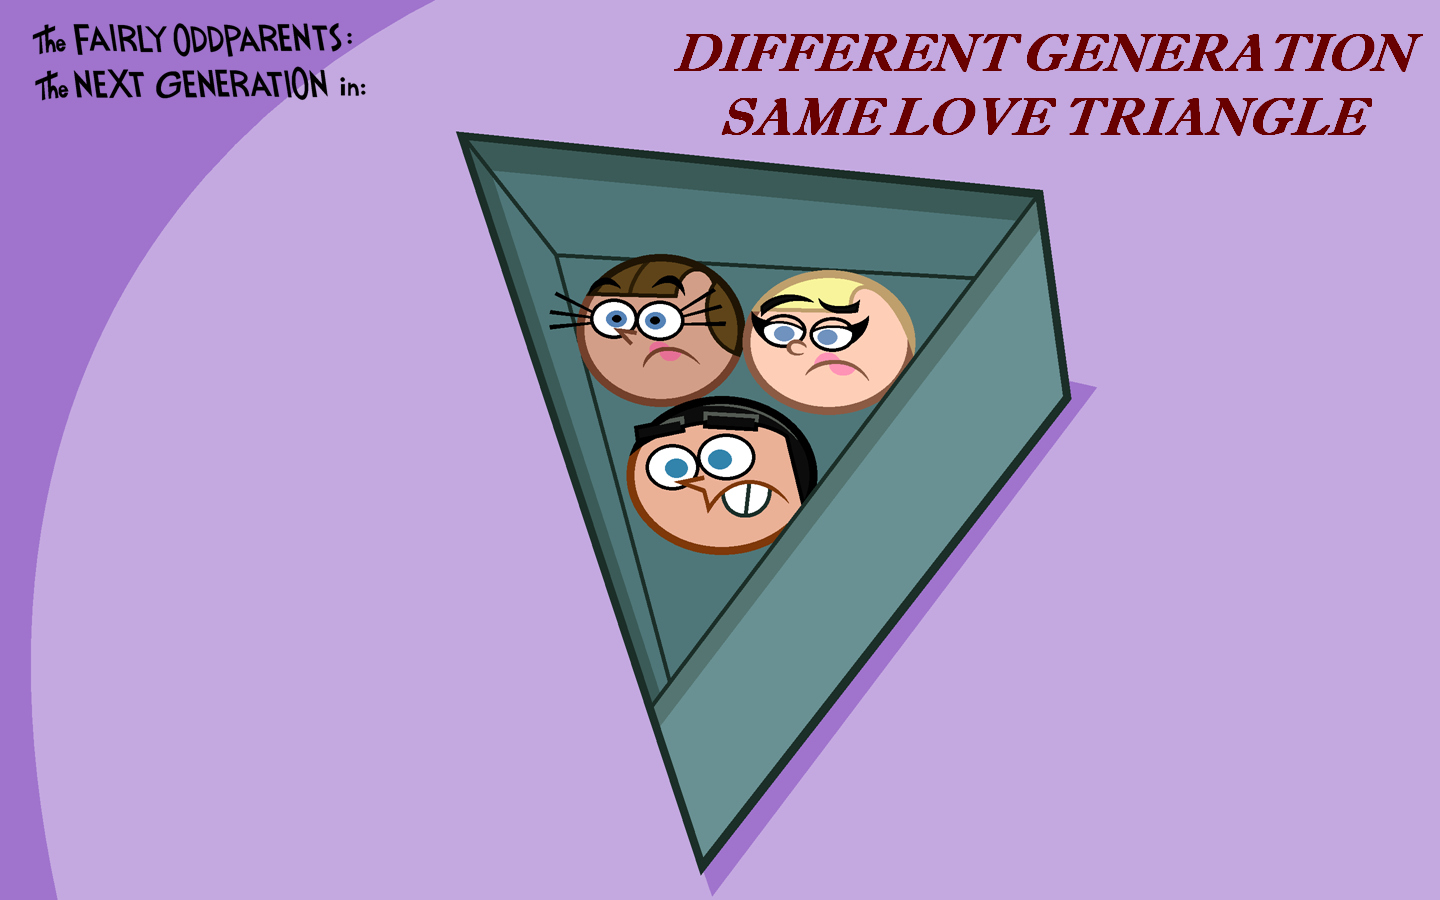 Different Generation, Same Love Triangle